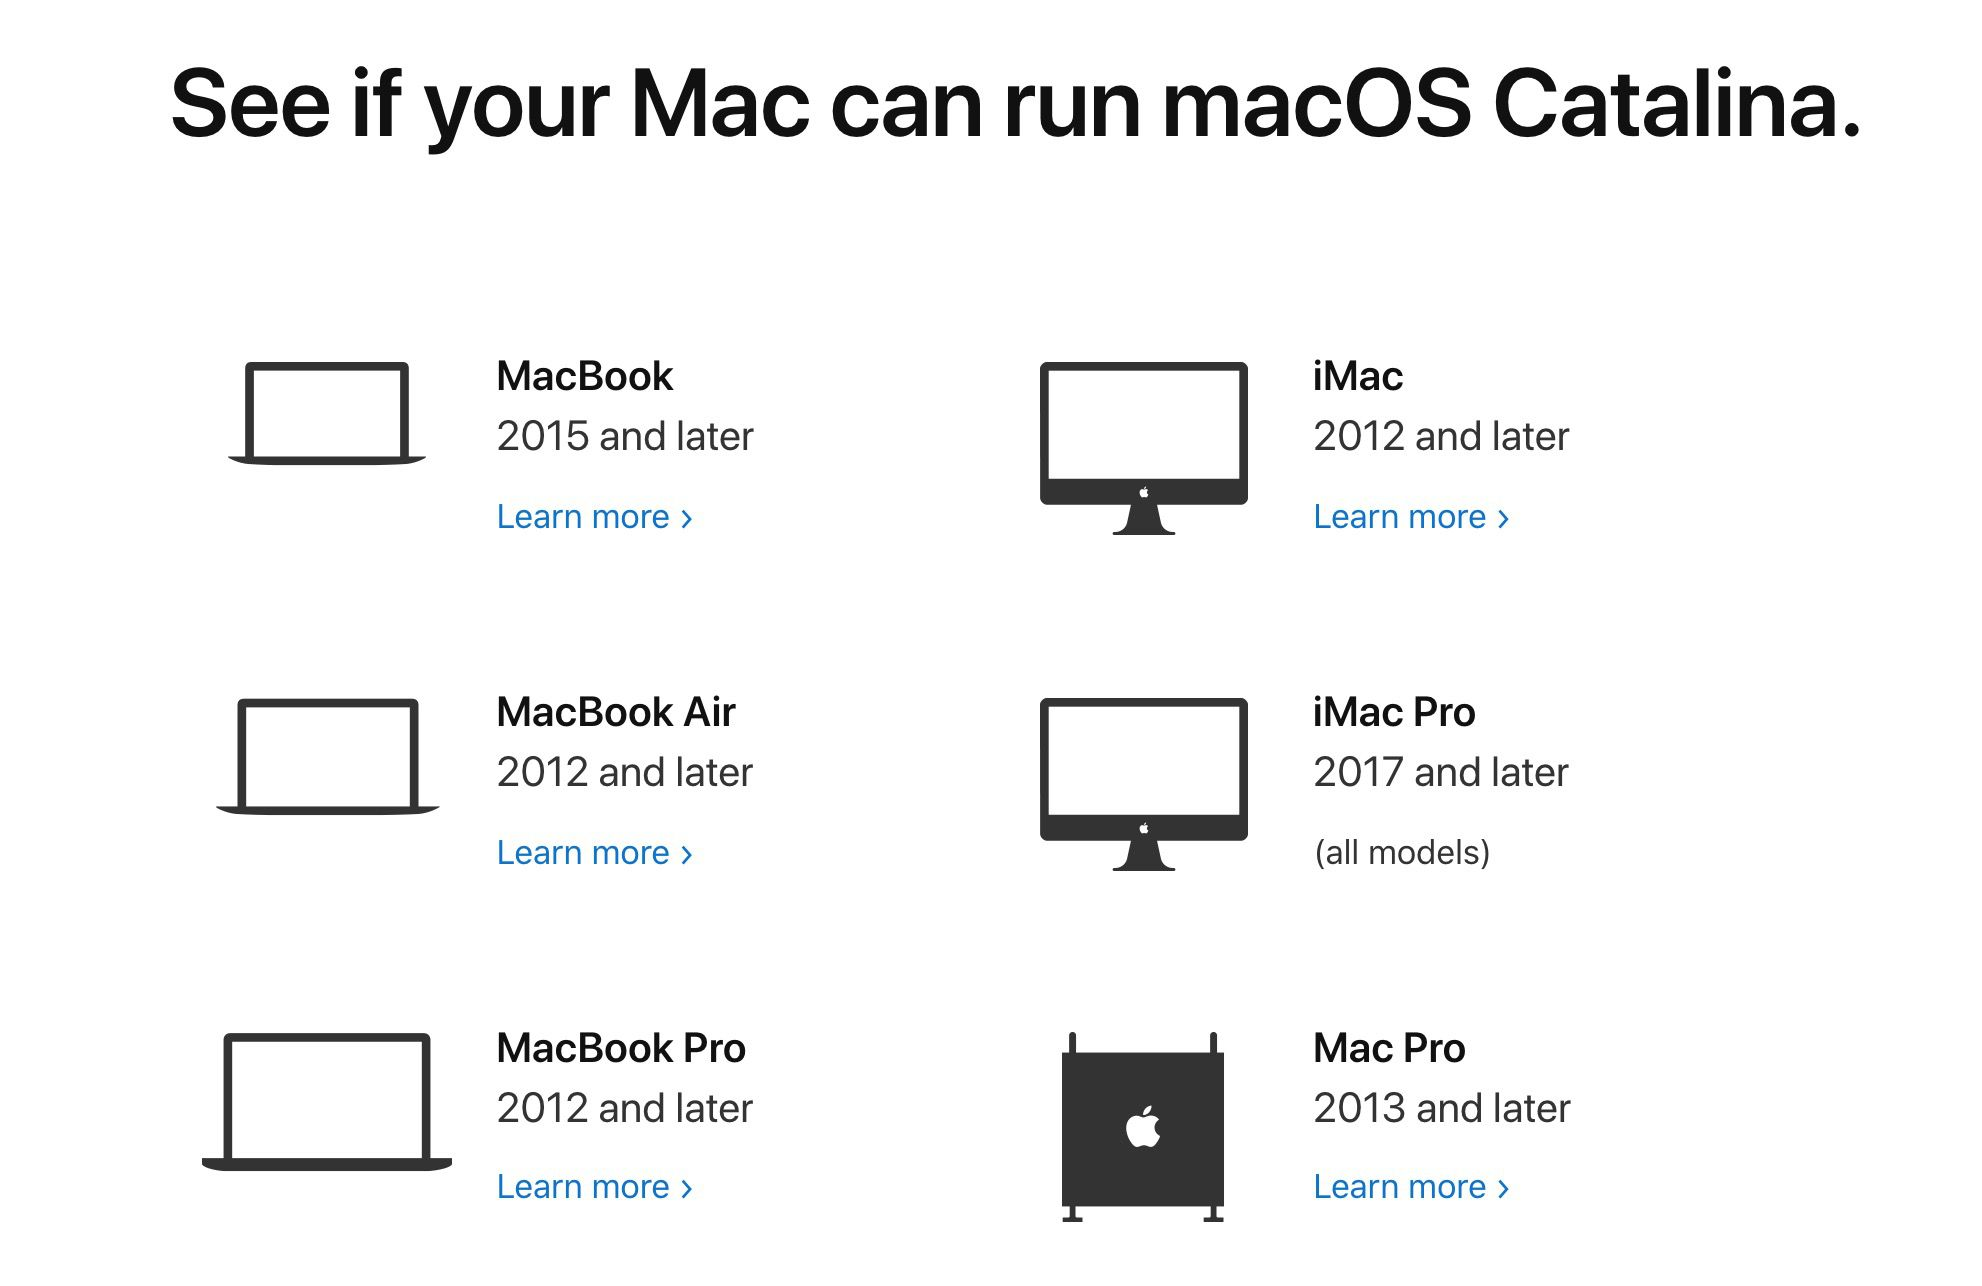 See if your Mac can run macOS Catalina